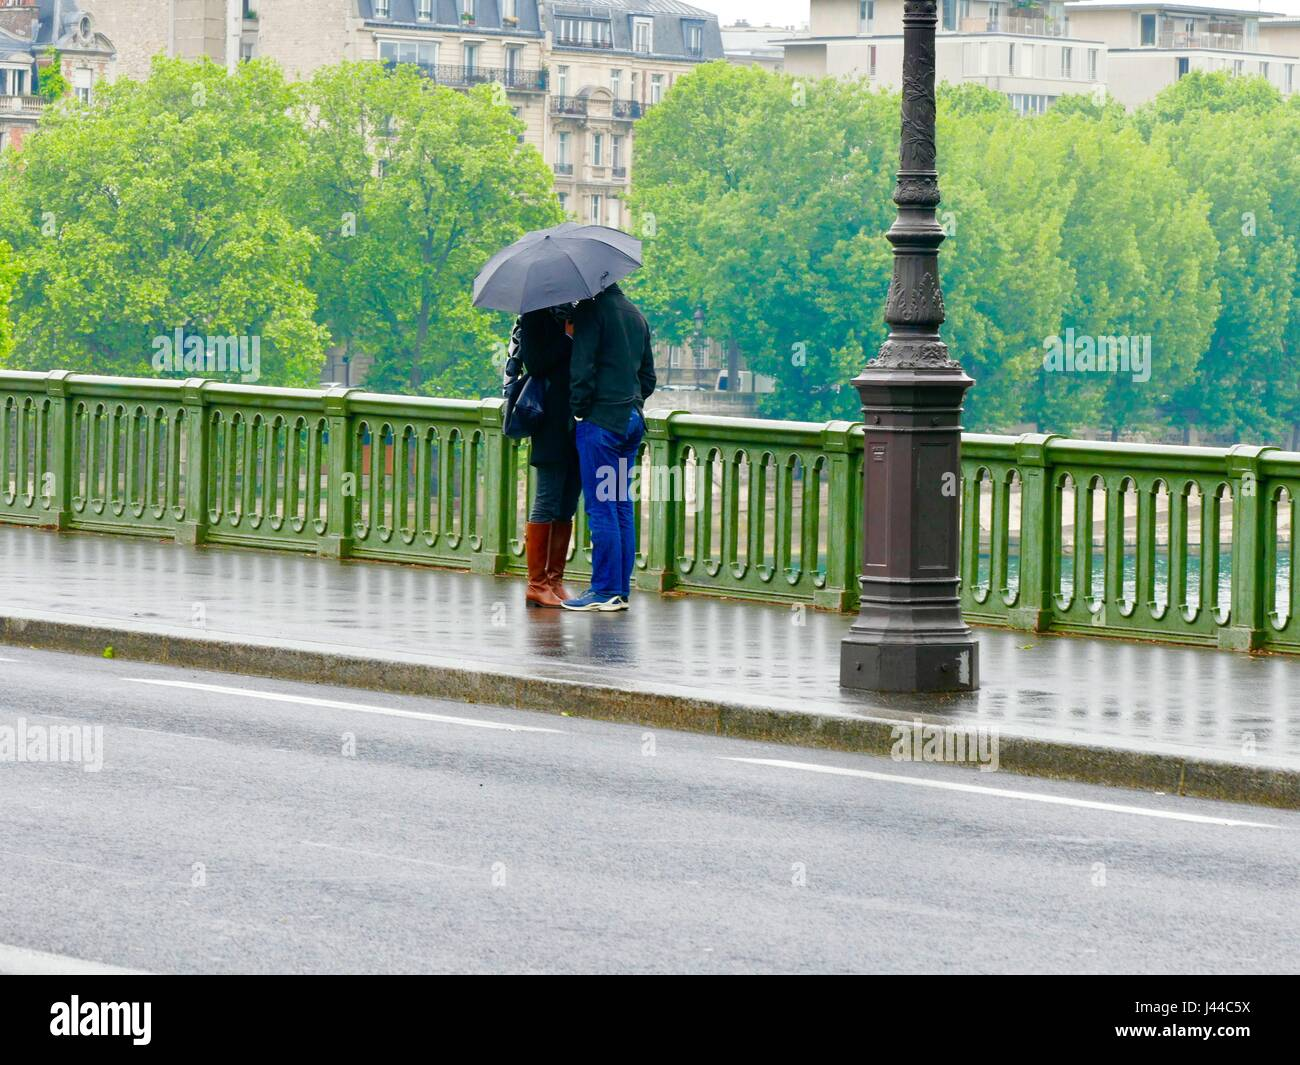 lovers-under-an-umbrella-on-a-bridge-ove